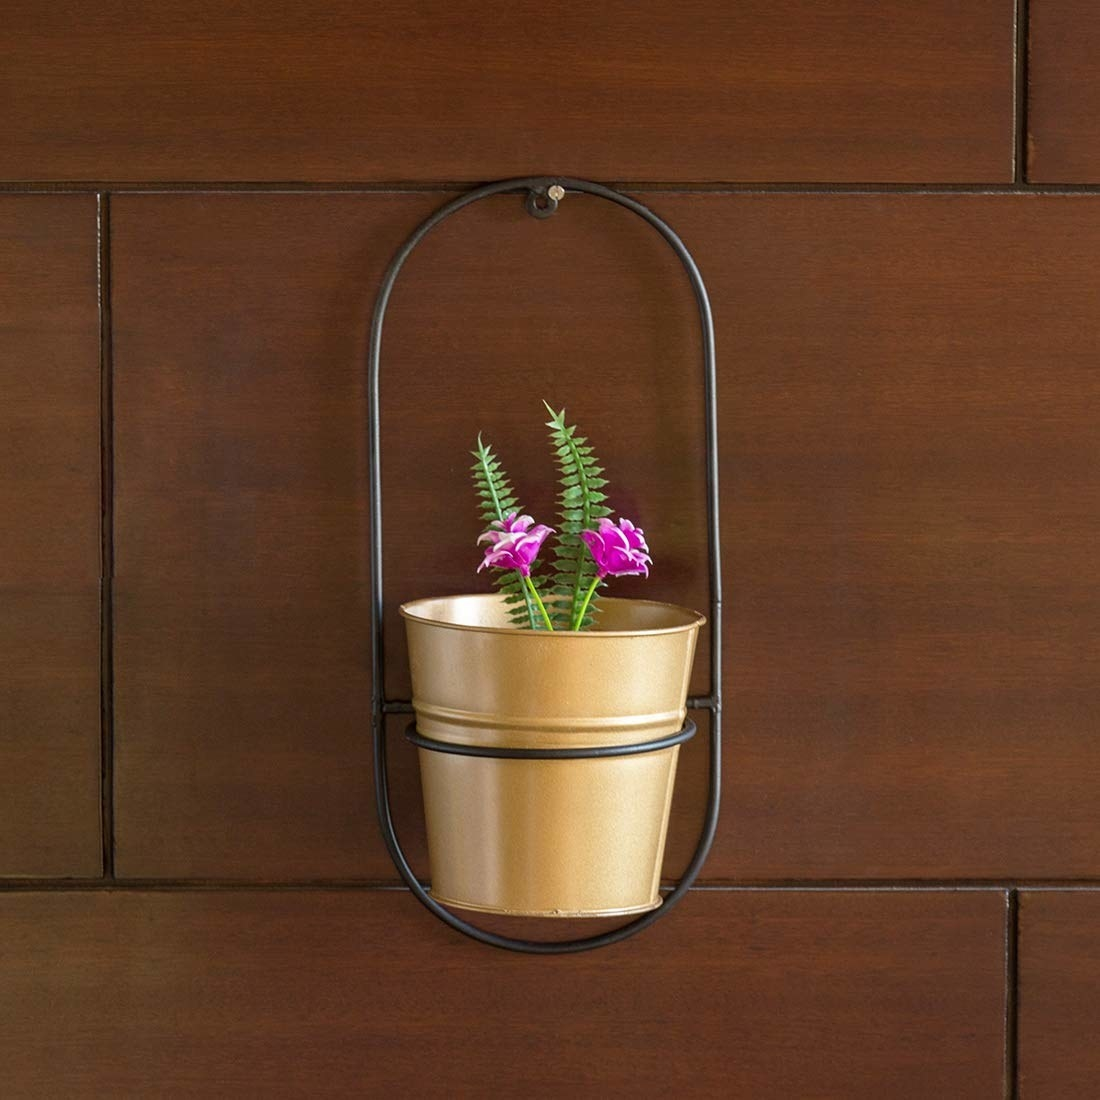 A golden wrought iron planter with an elongated elliptical base hanger also made made of wrought iron in black.